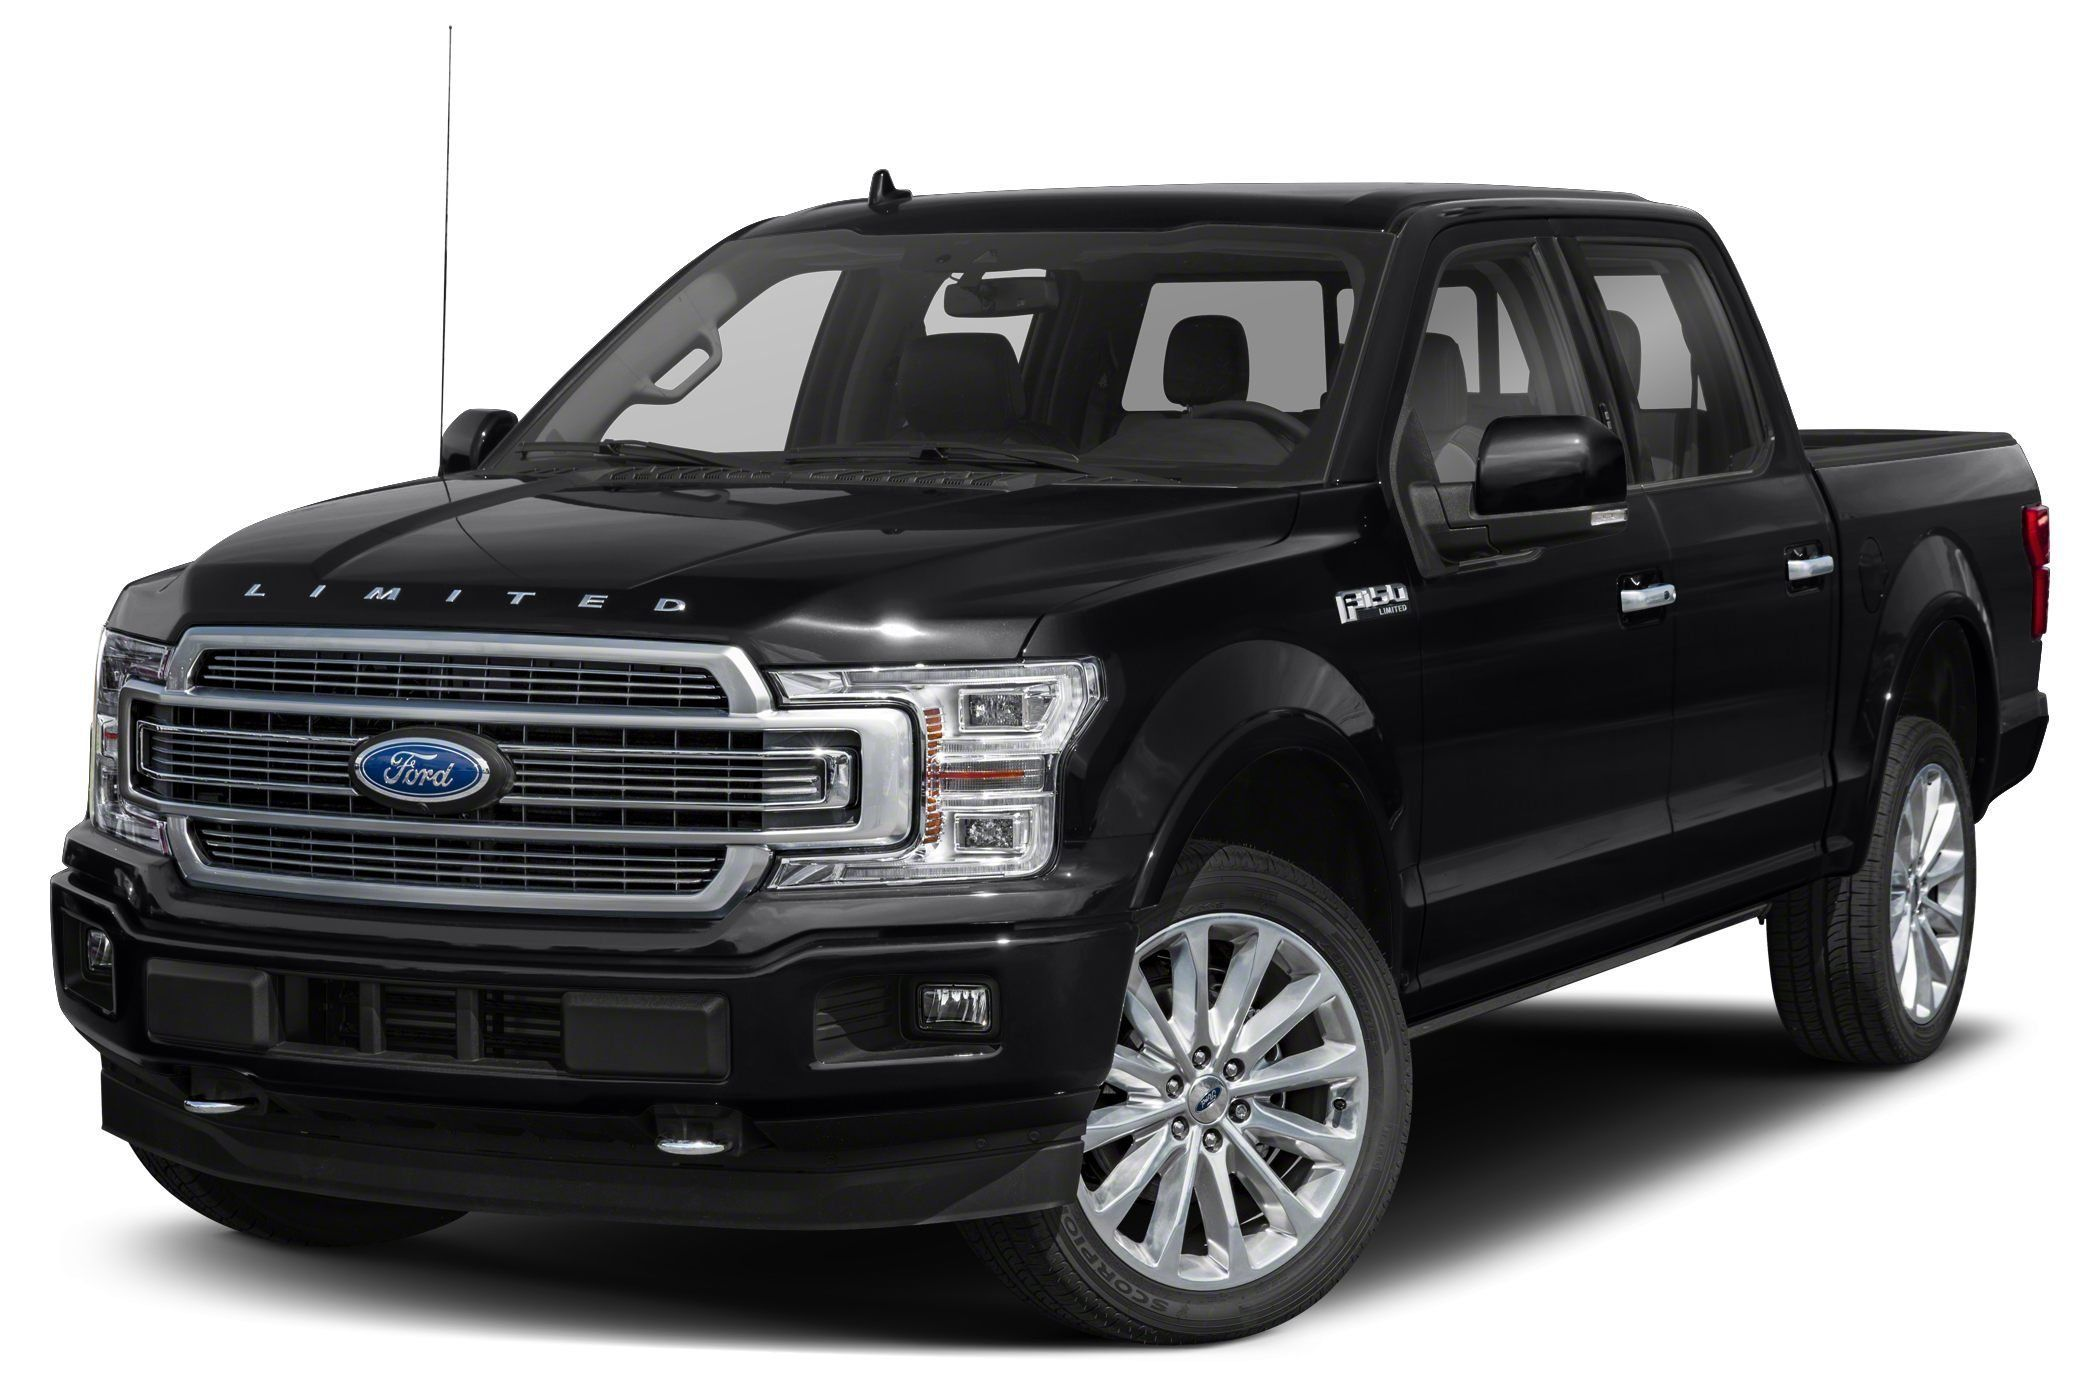 2020 ford F150 Raptor Mpg Pictures in 2020 Ford f150